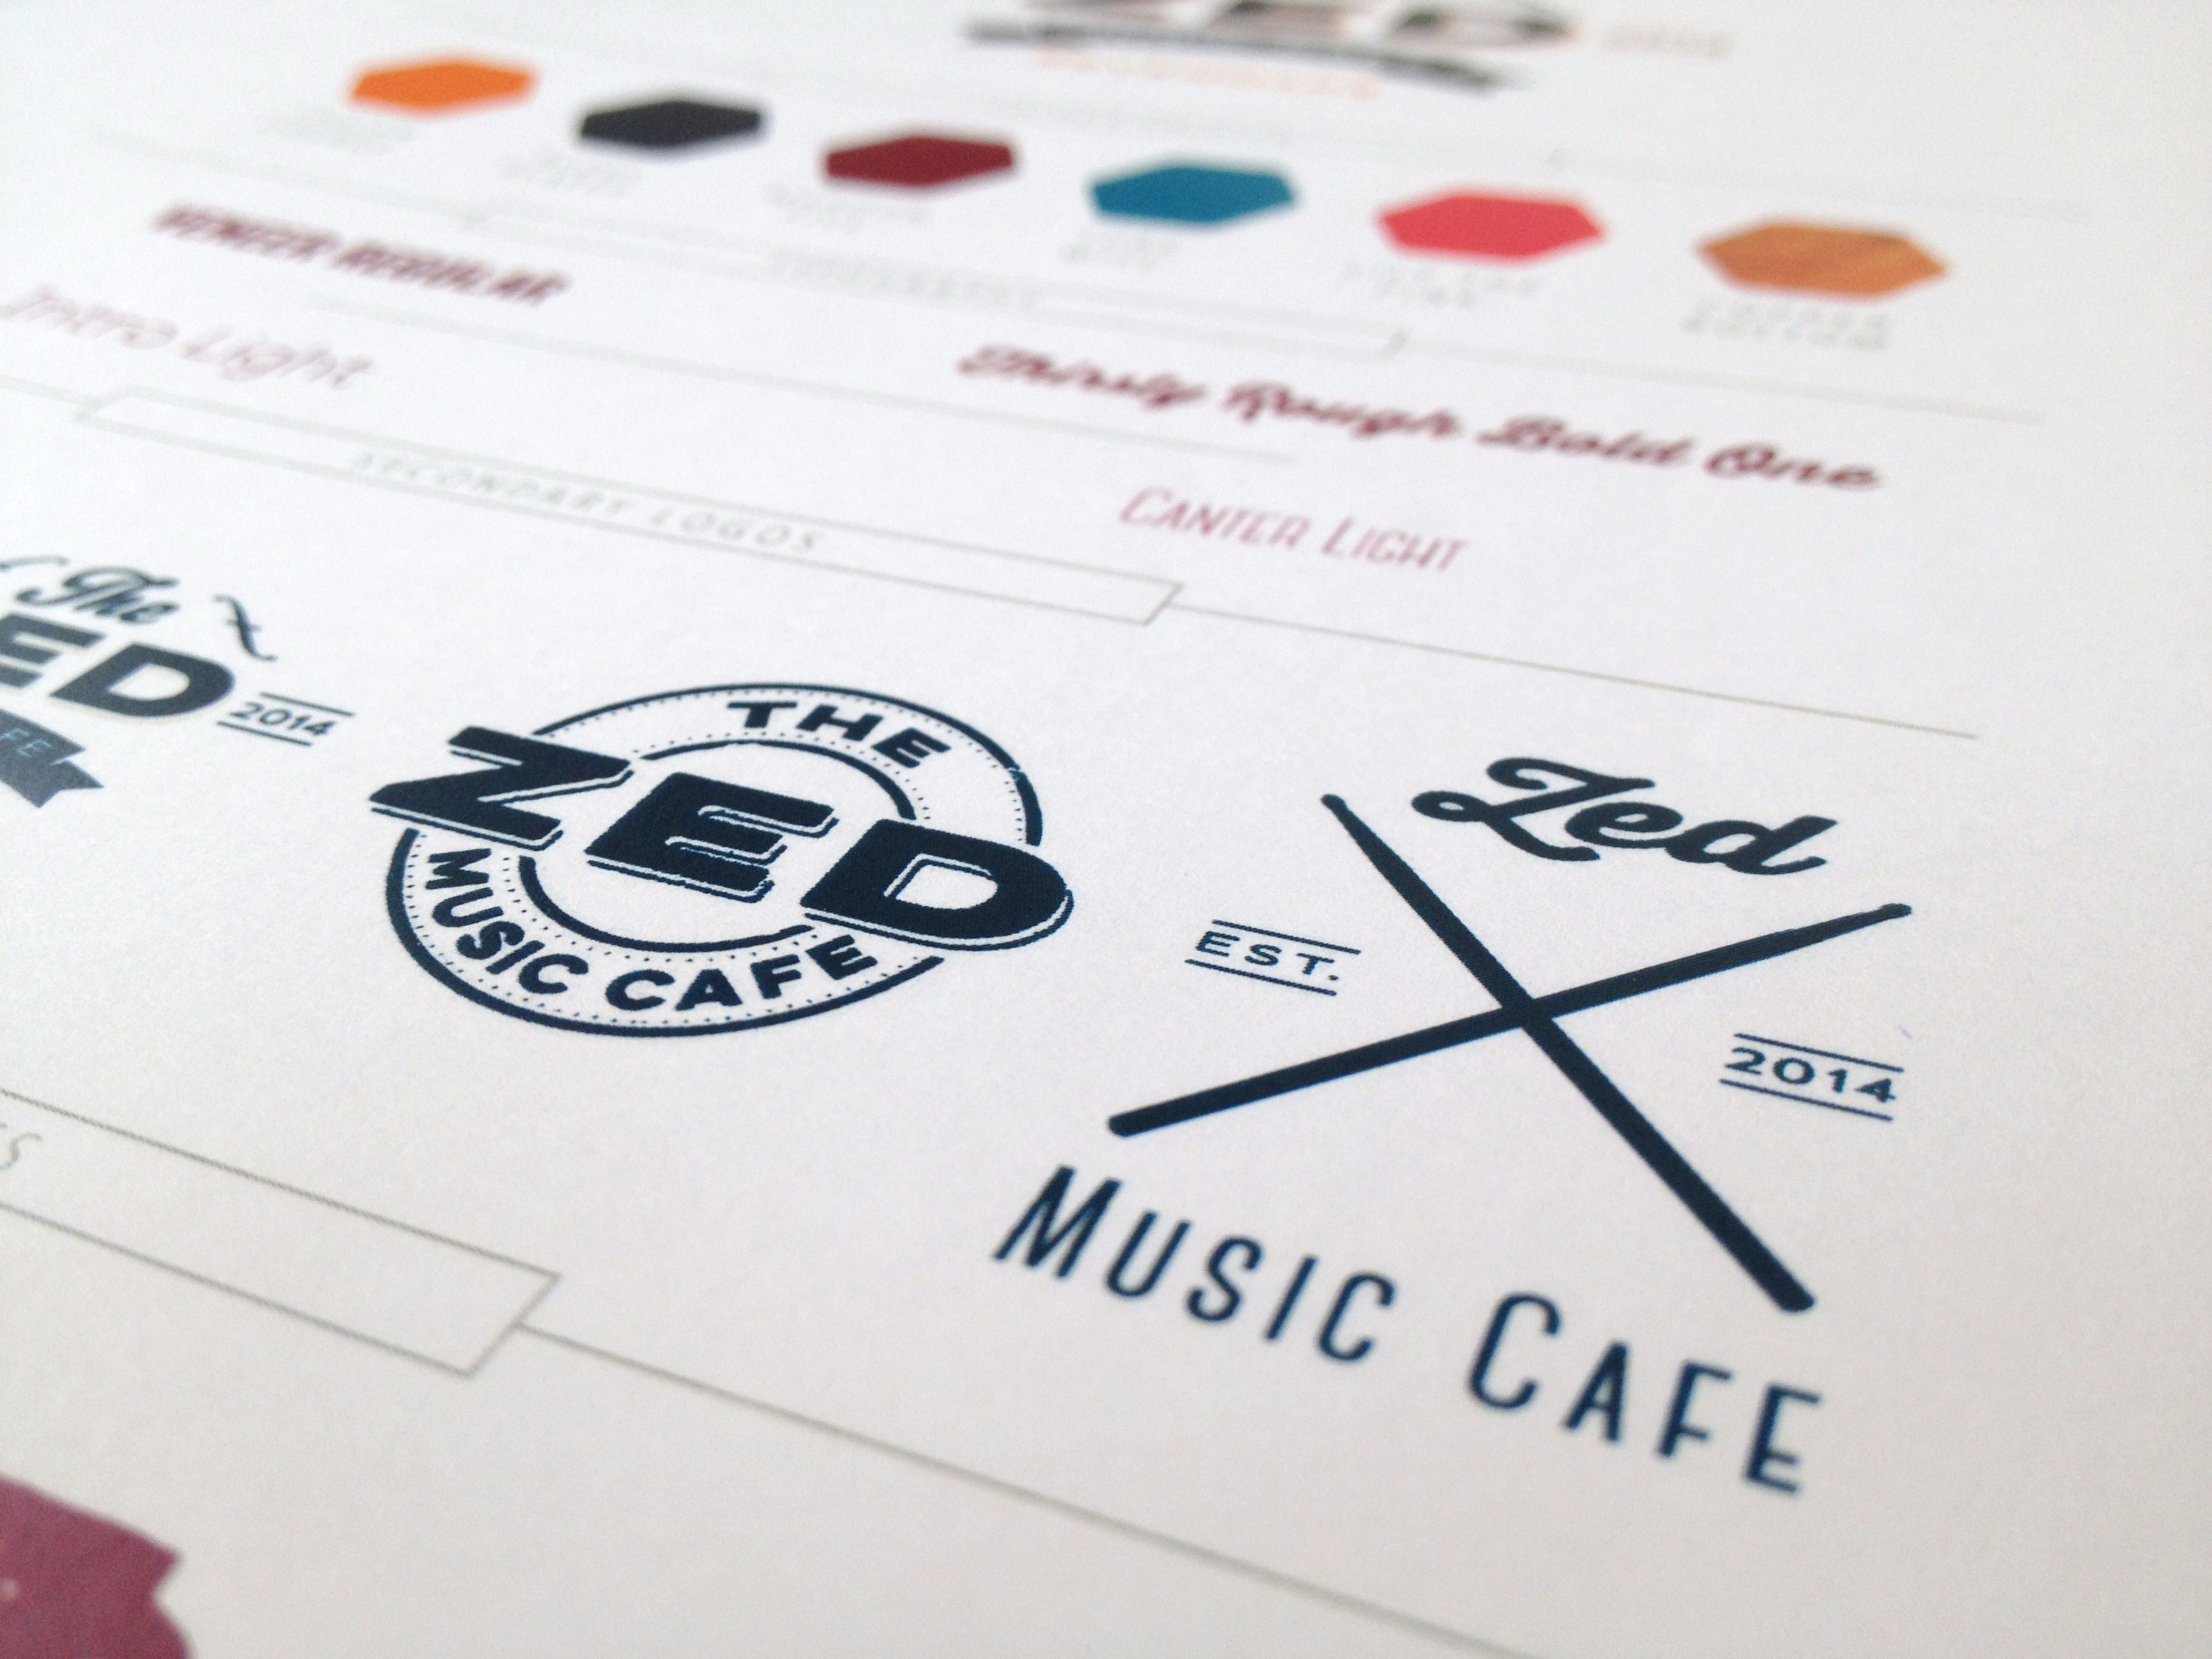 Zed Music Cafe Sevenoaks secondary logo design by Ditto Brand Stylists